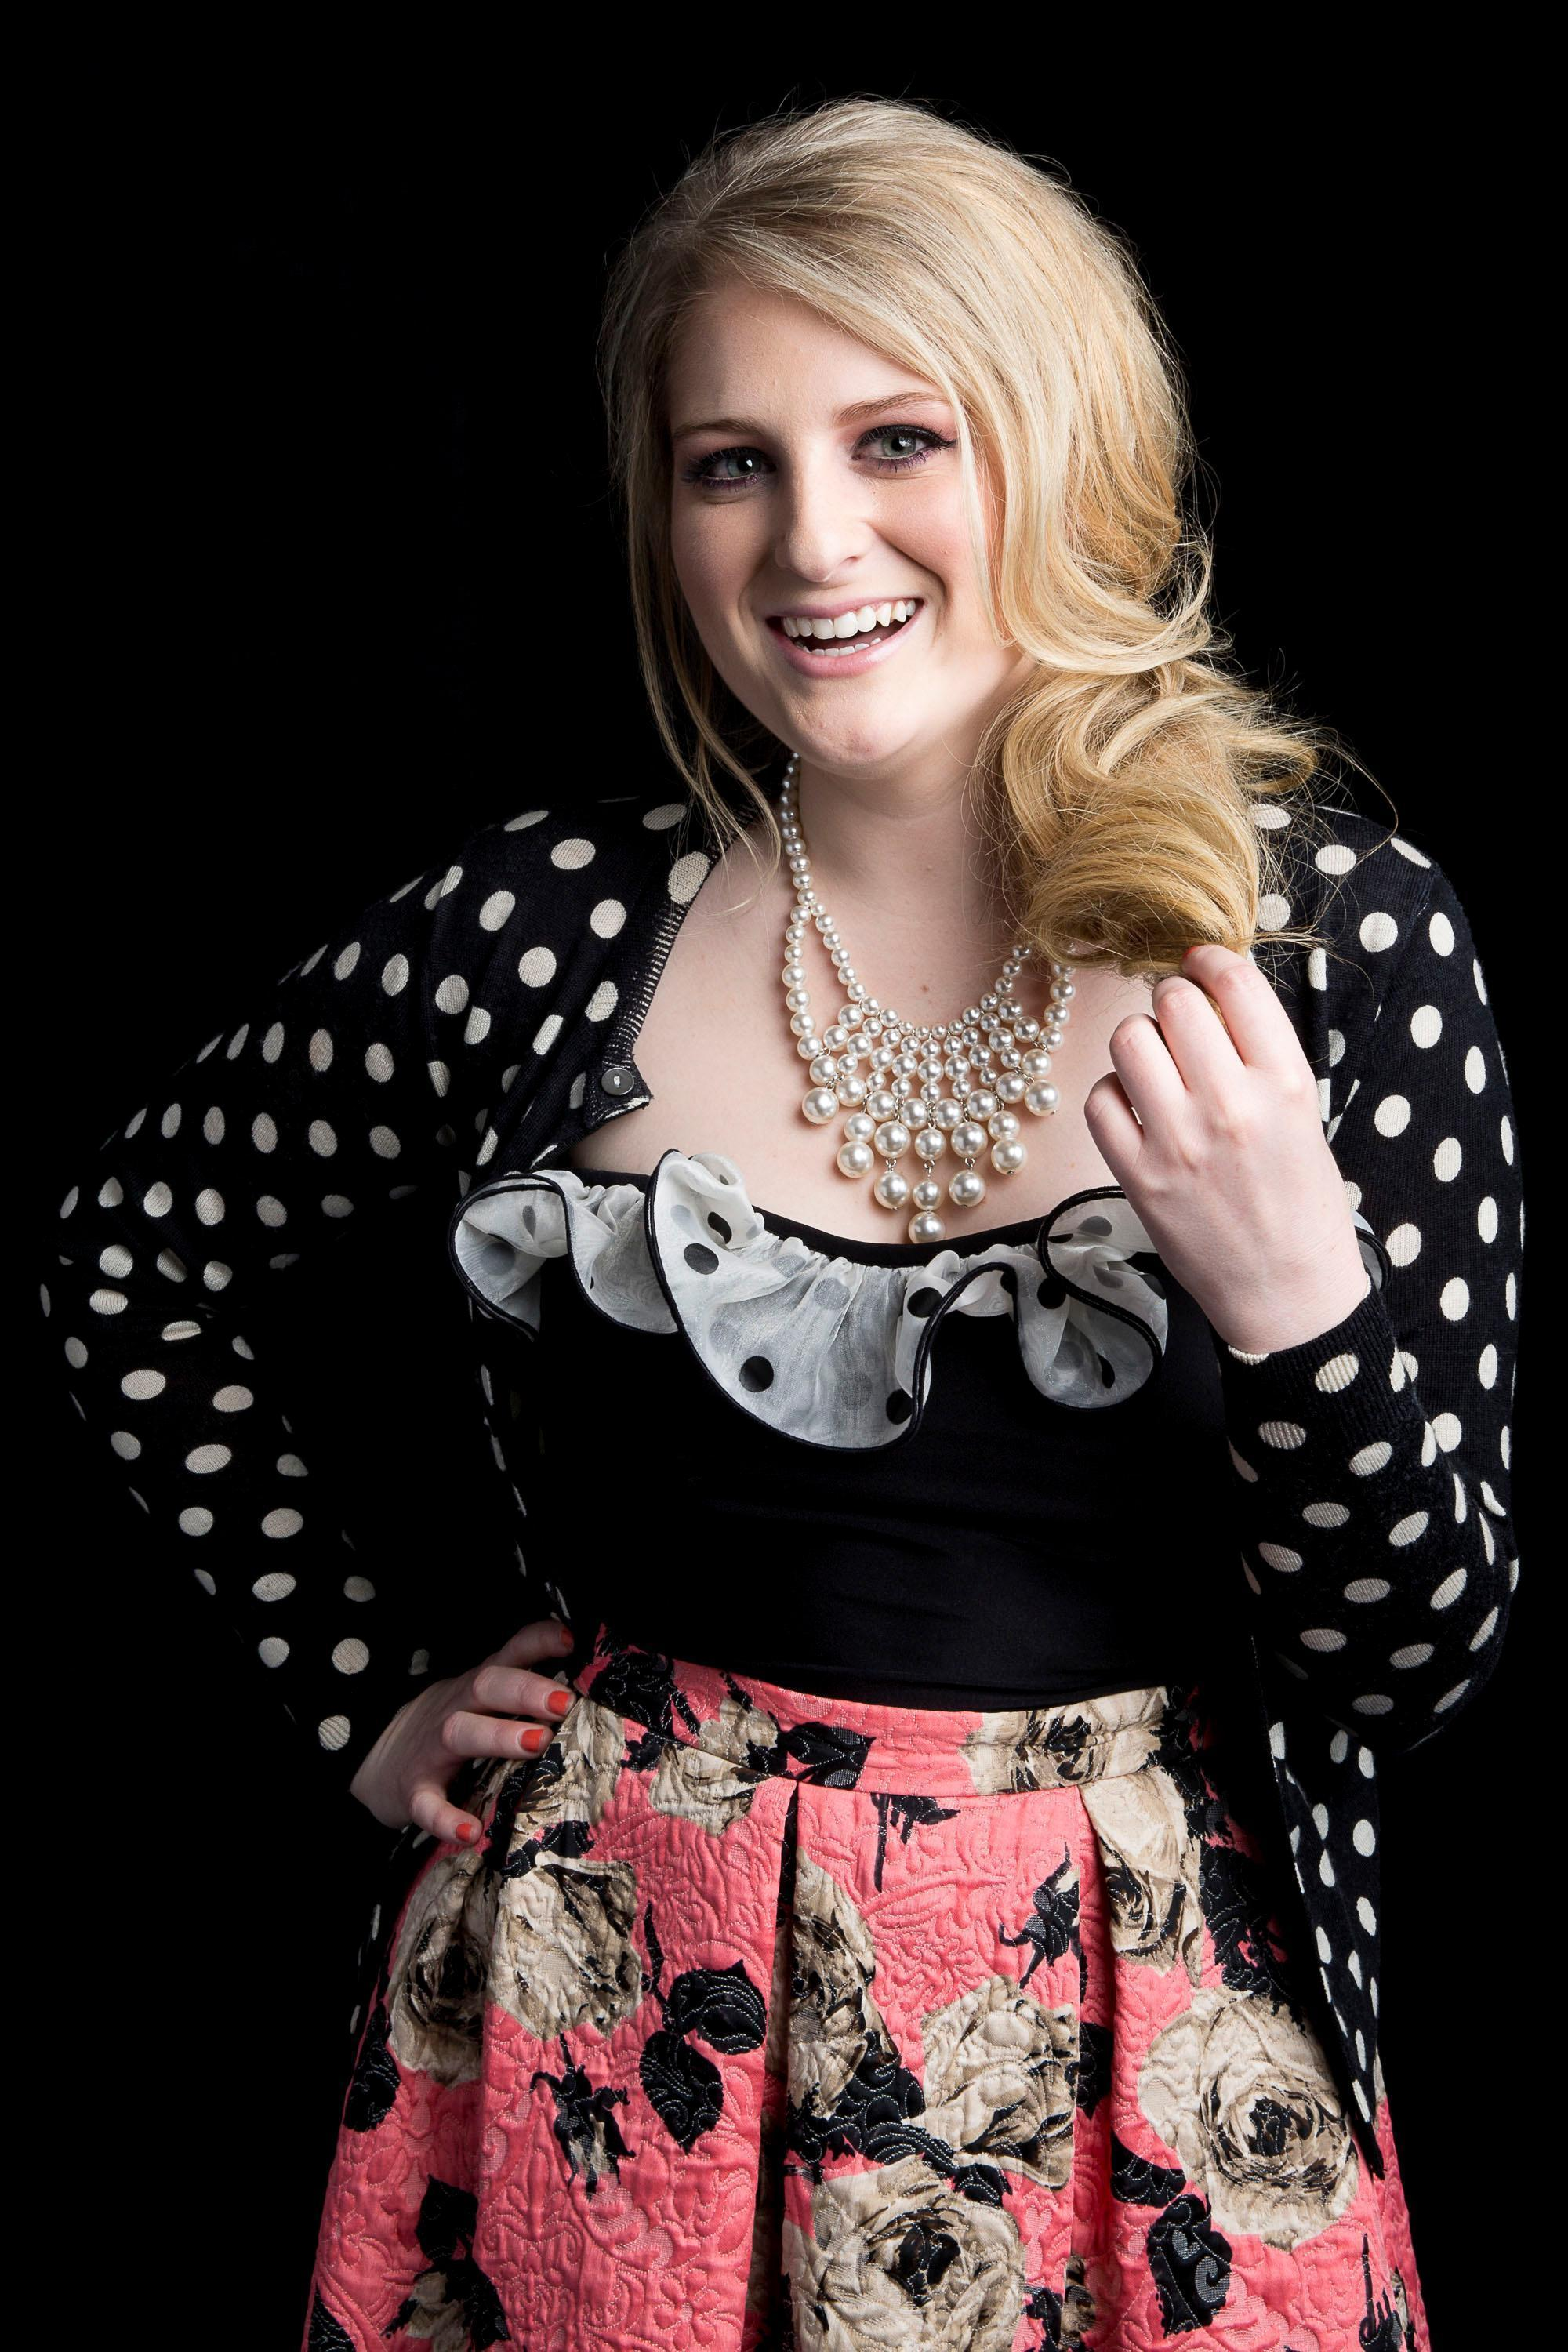 Stream Meghan Trainor on Yahoo Live: Tonight, 6:15 p.m. PT!